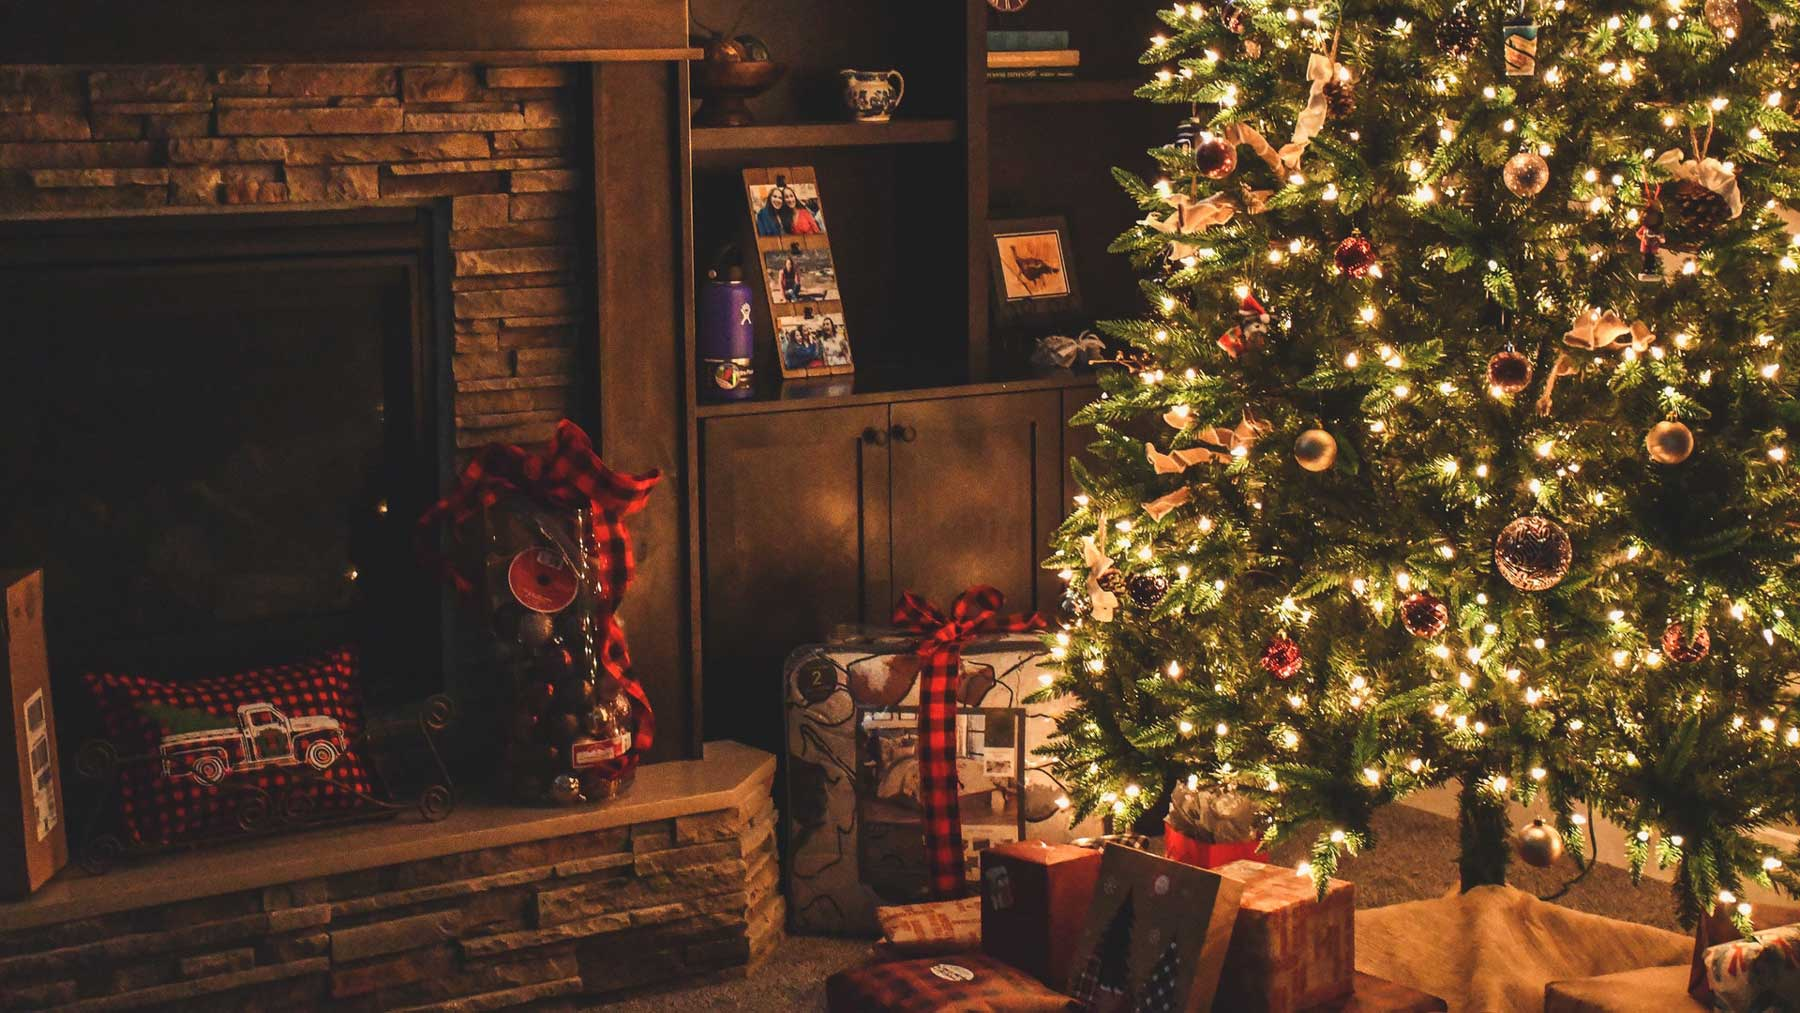 Christmas tree with presents underneath next to fireplace with decorations